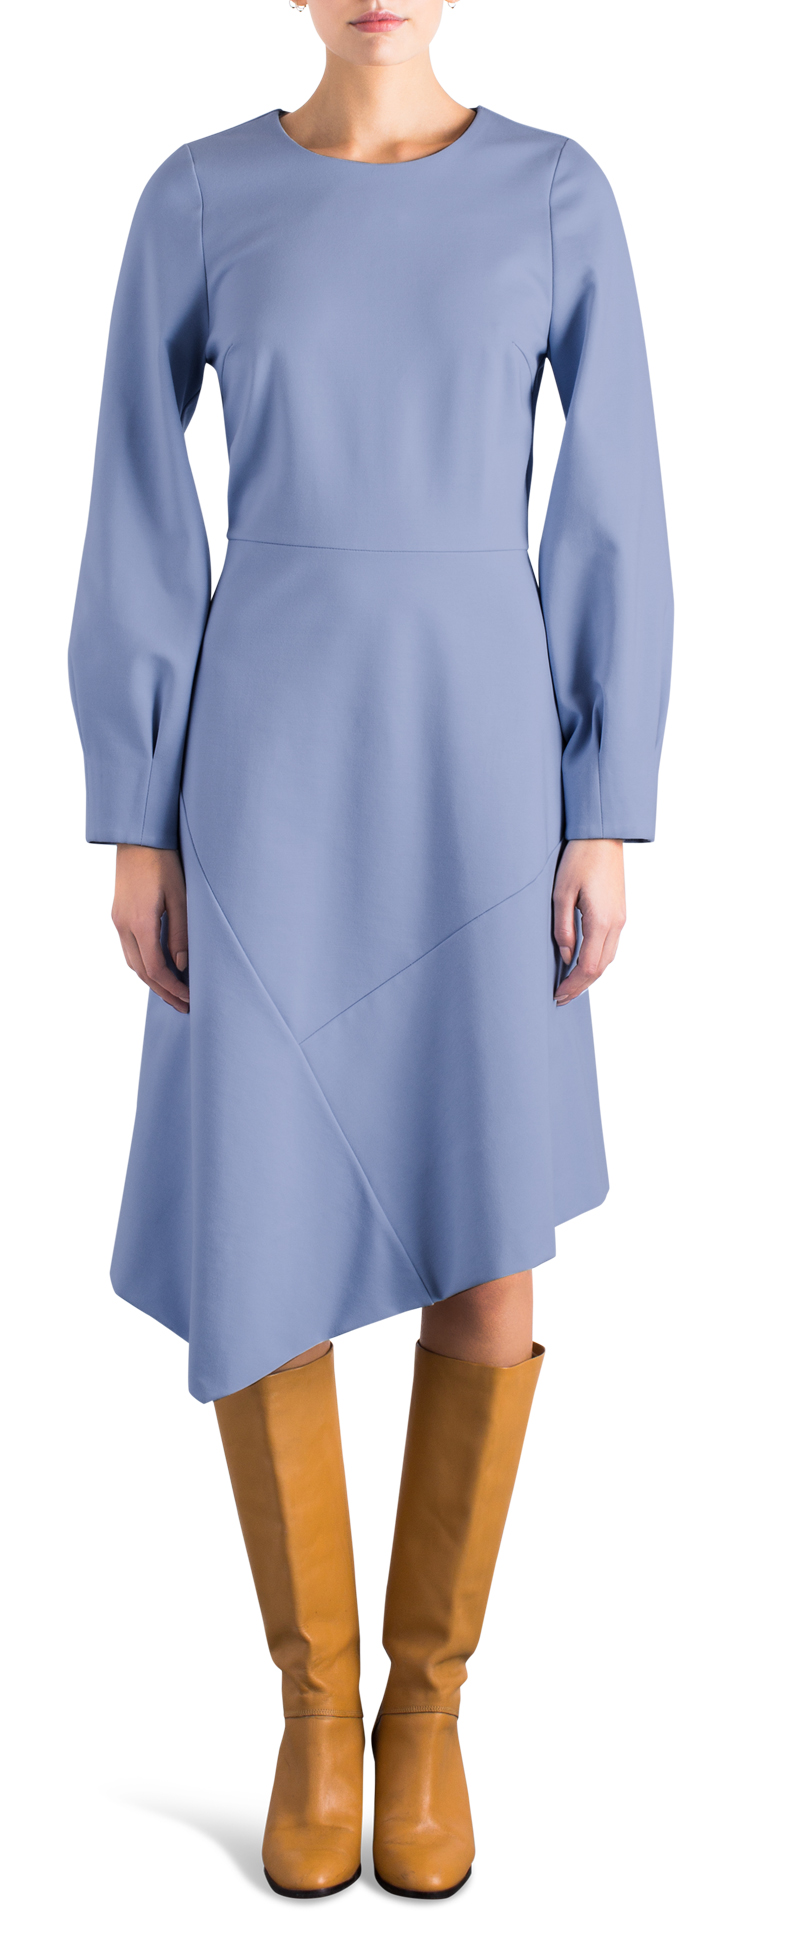 assymetrical dress iceblue